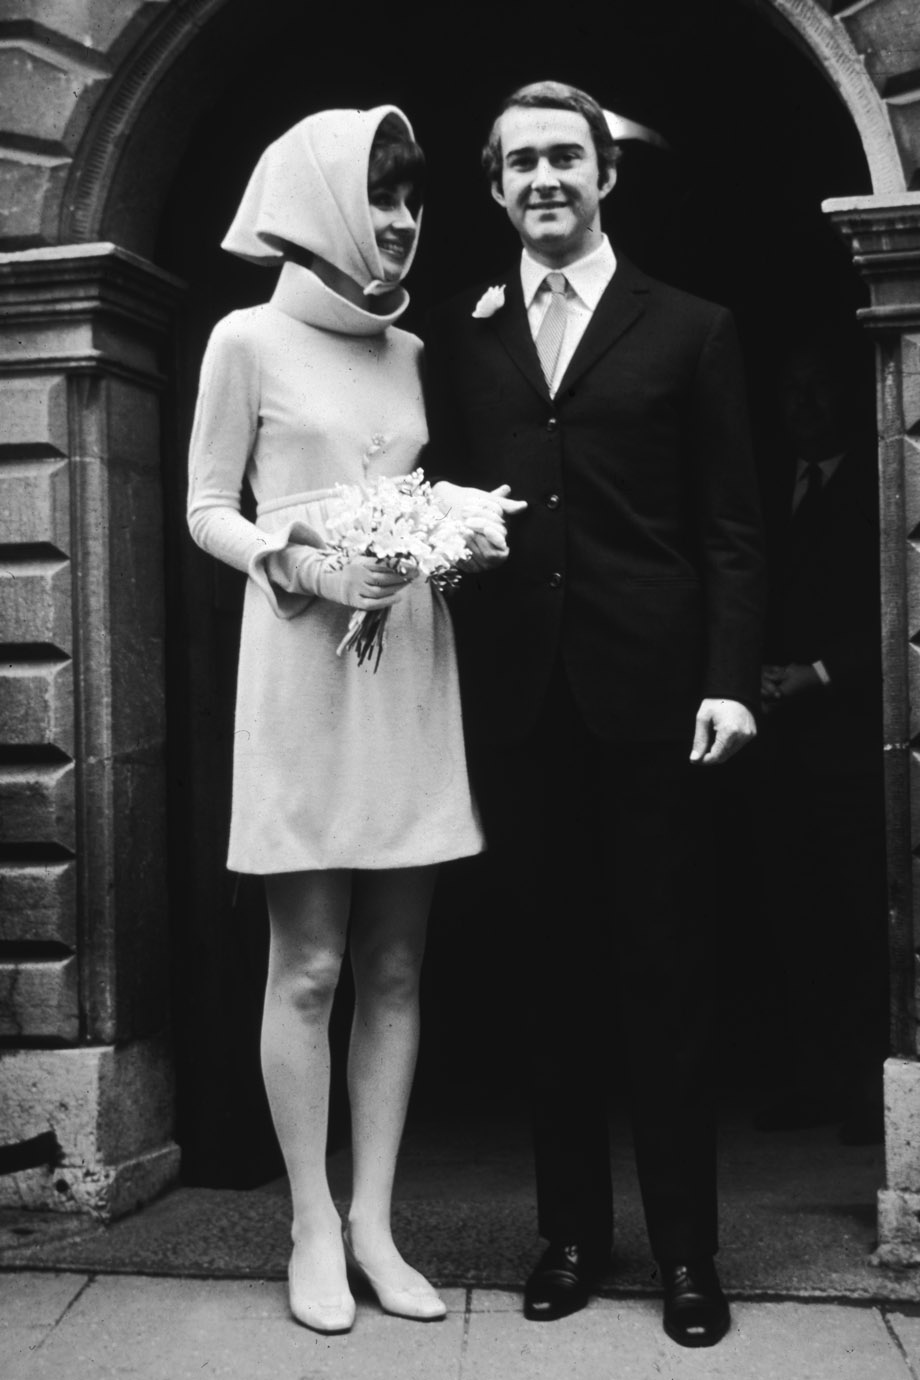 <p>Train and veil not really your style? Take inspiration from stylish brides of yesteryear and opt for an unconventional dress that will still make you feel every bit the princess.</p><p></p><p></p>